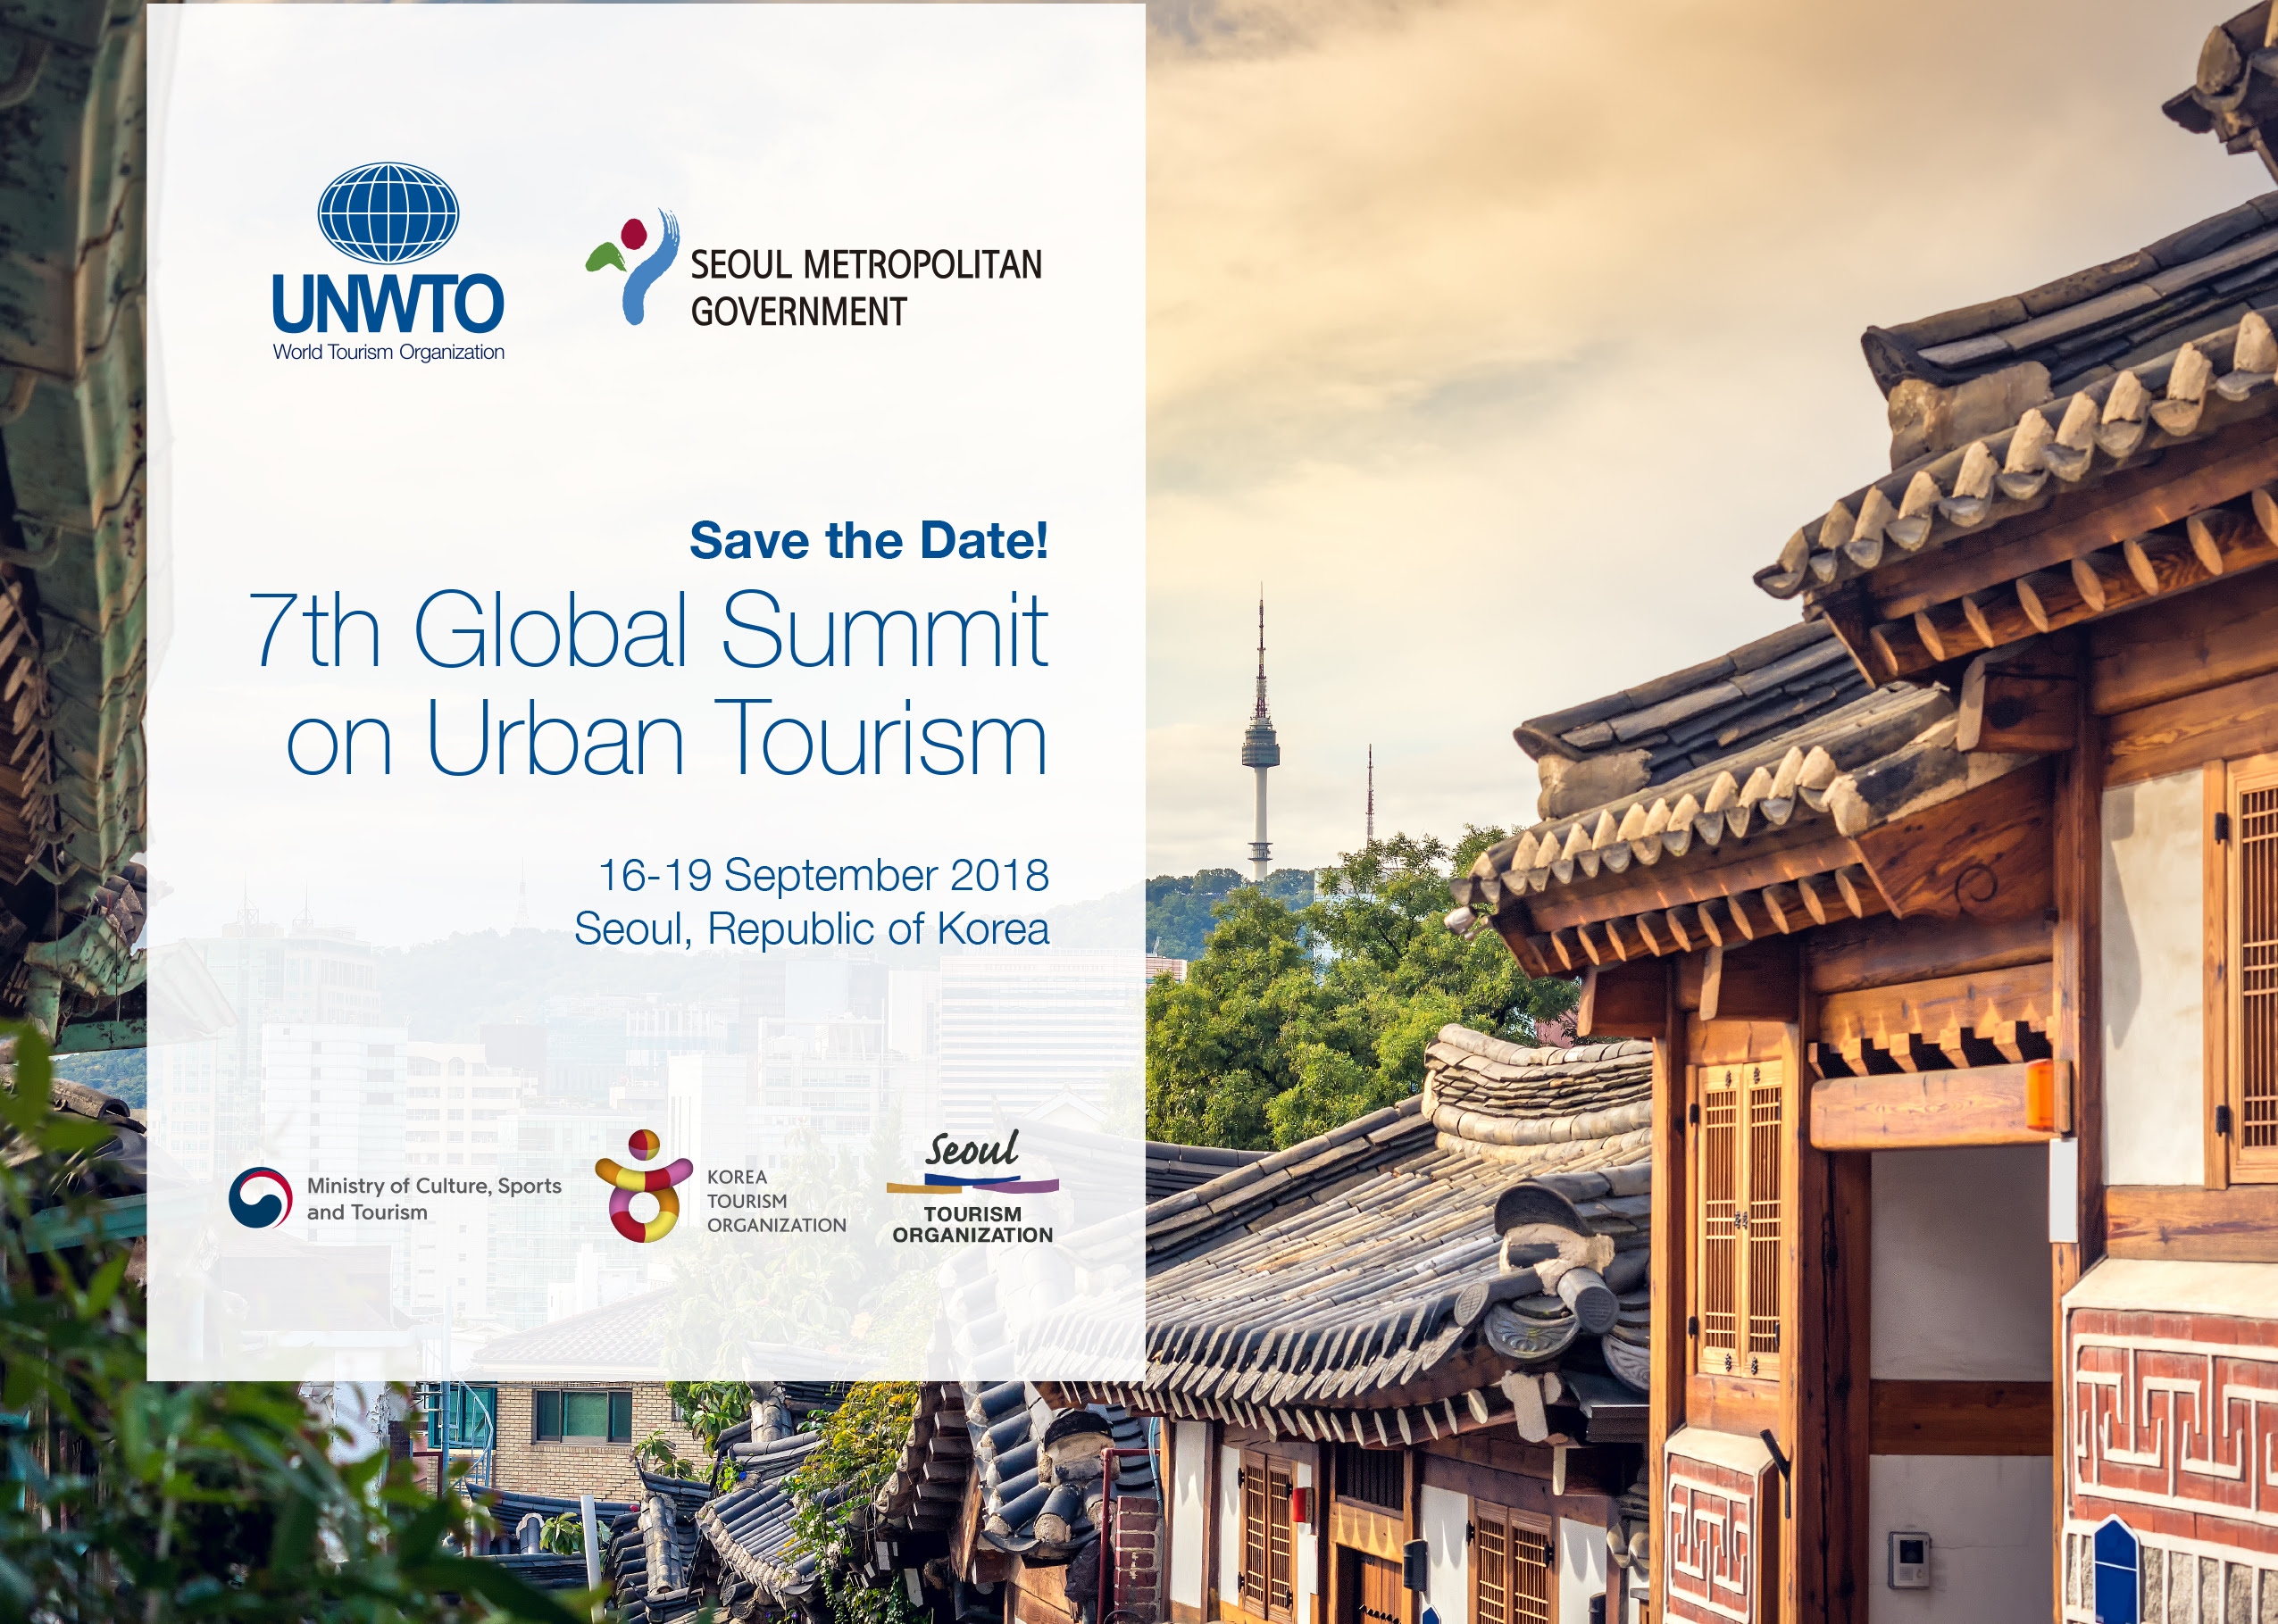 UNWTO: Laying out a Sustainable Future for Urban Tourism